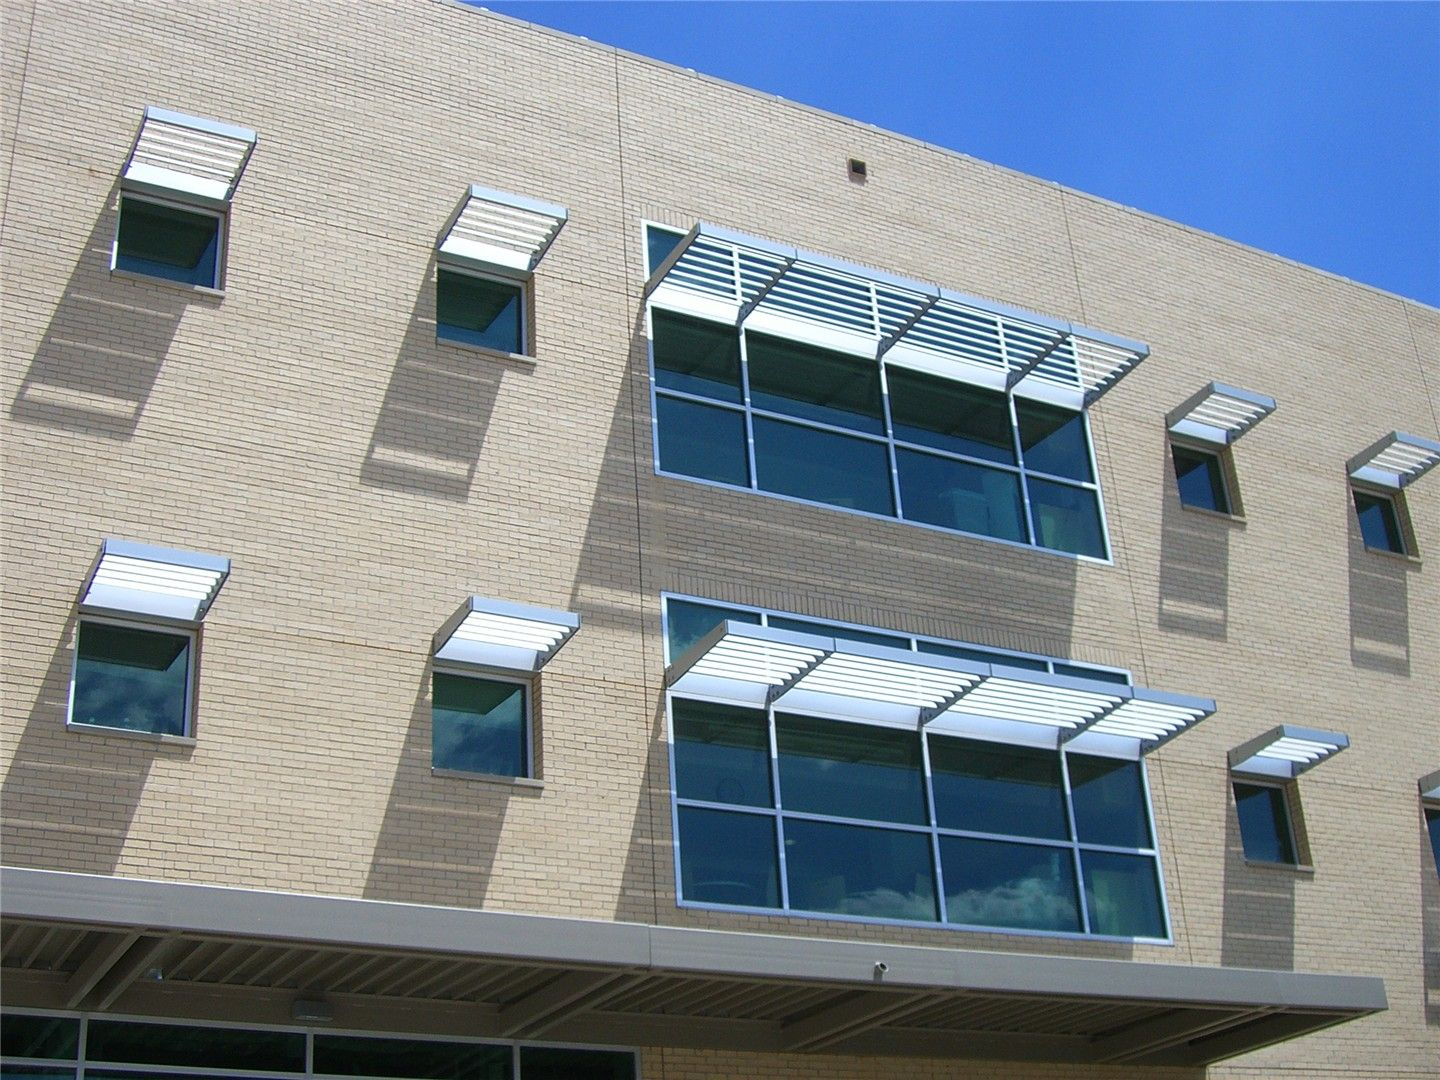 Sun Control Devices Keep Your Building Cool And Comfortable While Giving A Sleek Modern Look